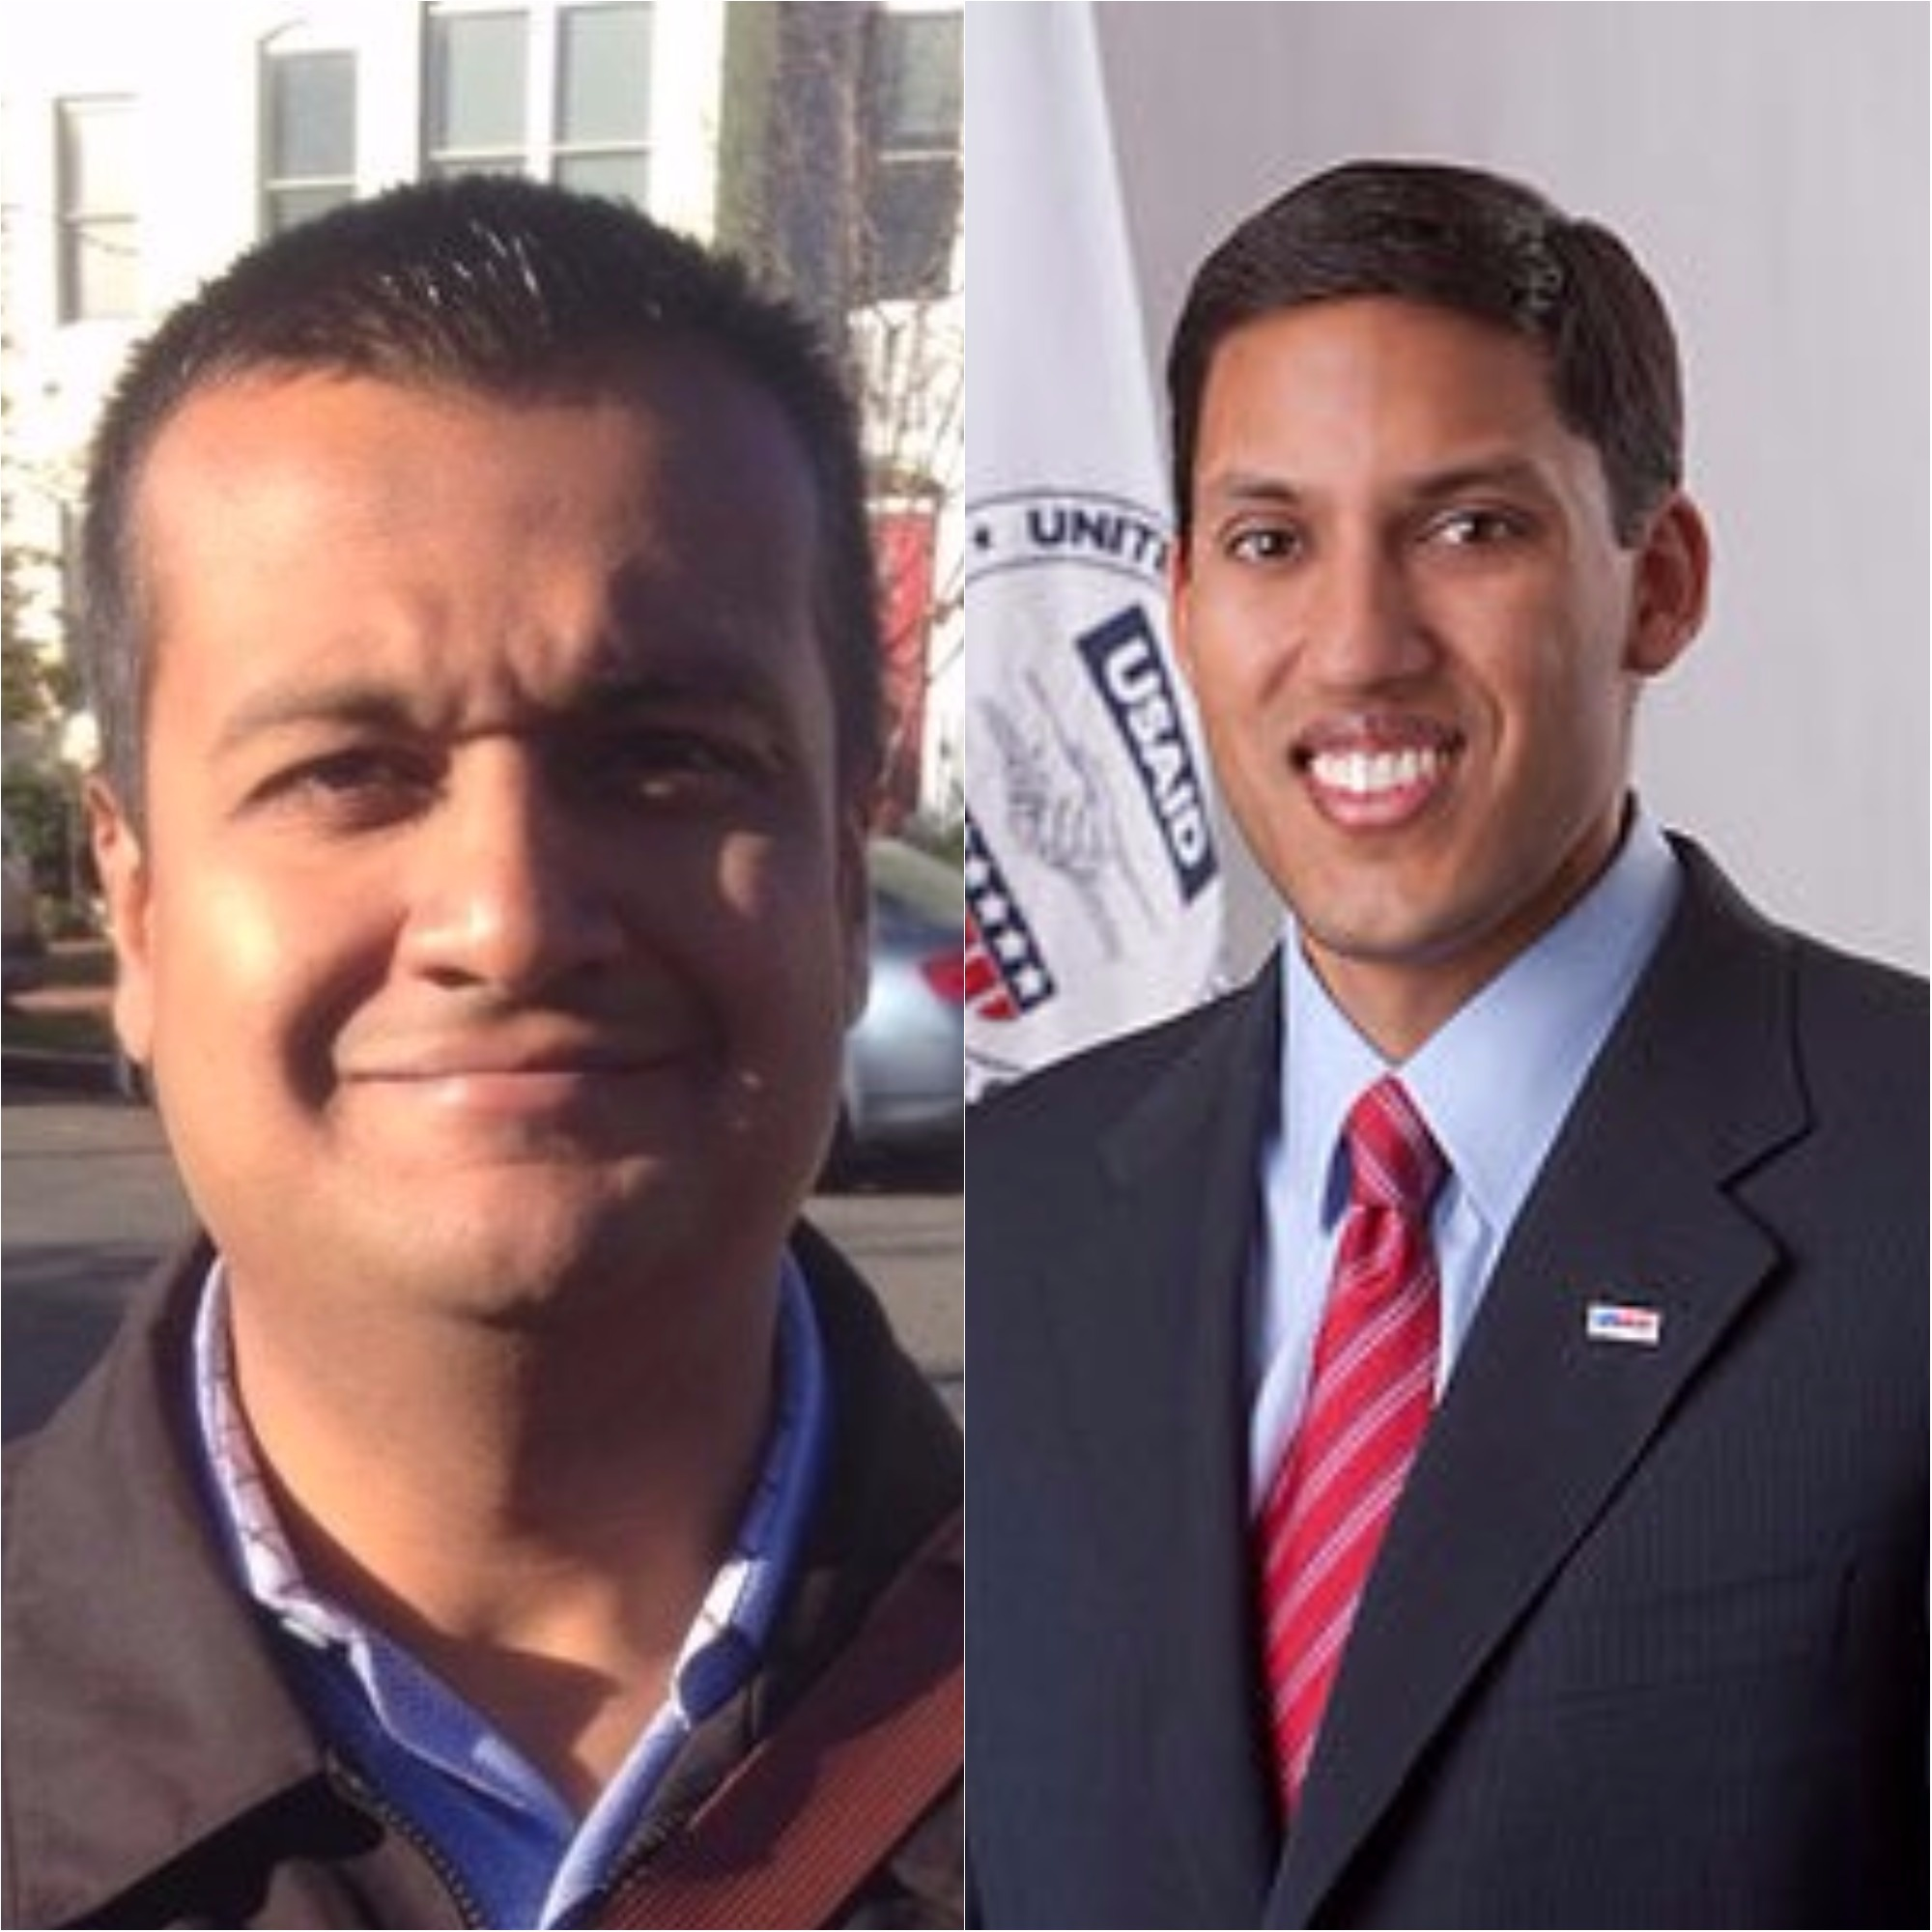 White House press official Raj Shah (left) and ex-Obama administration appointee Rajiv Shah.